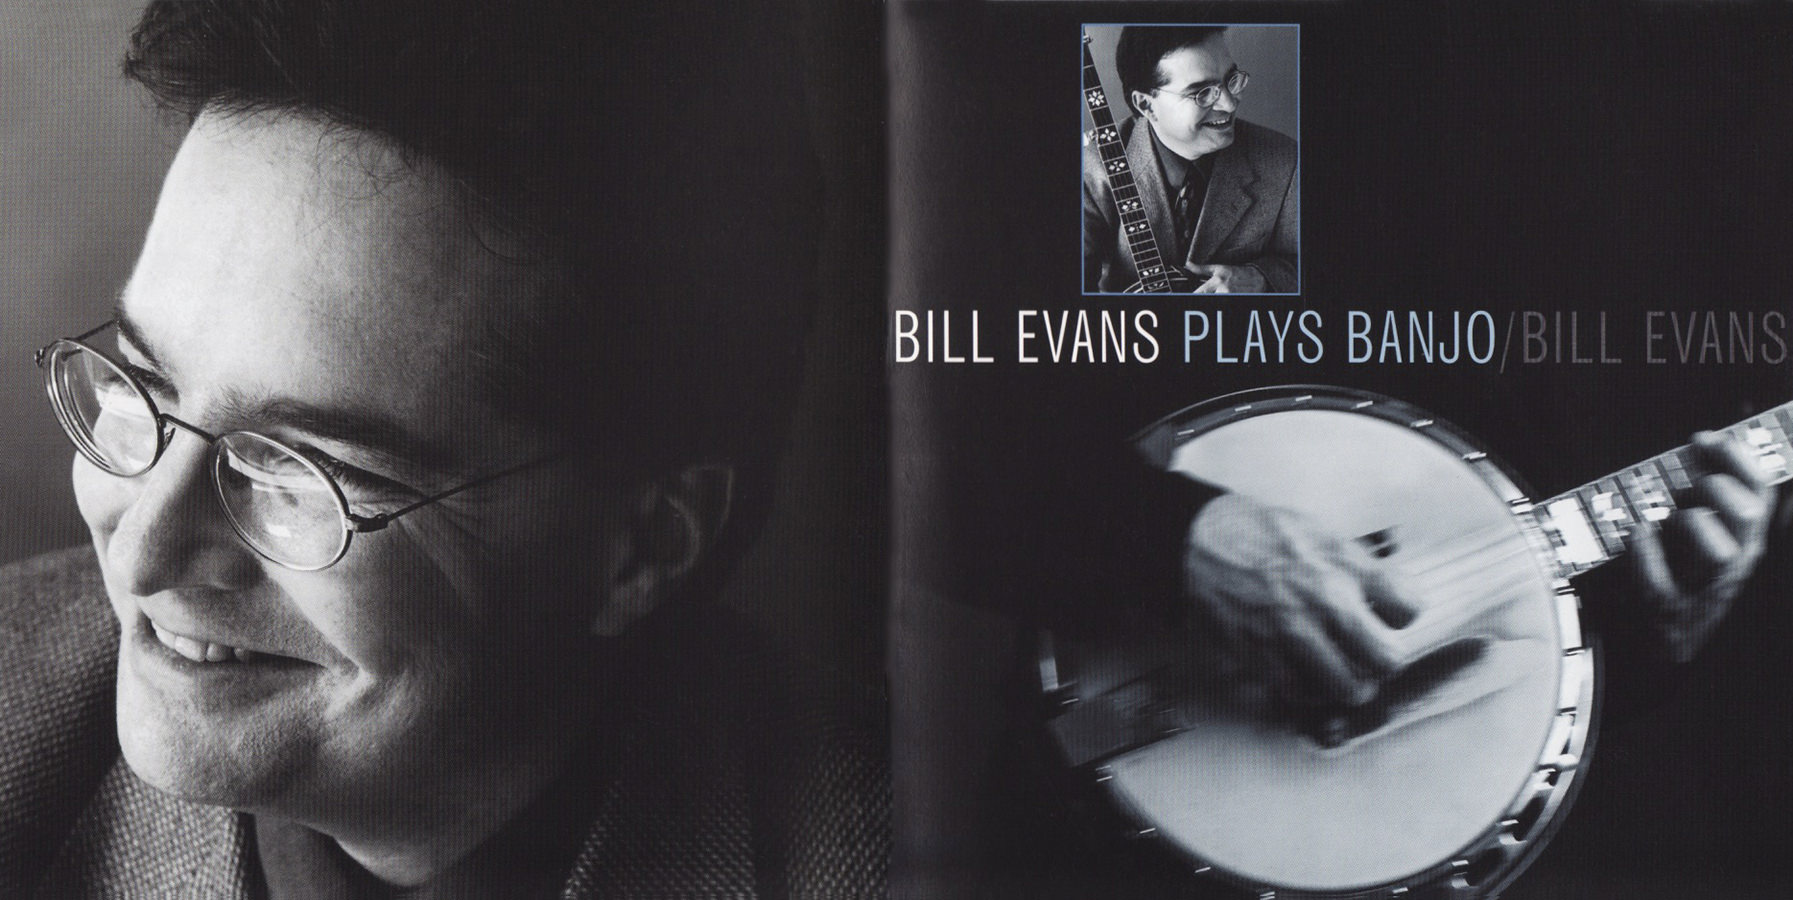 Bill Evans, Bill Evans Plays Banjo